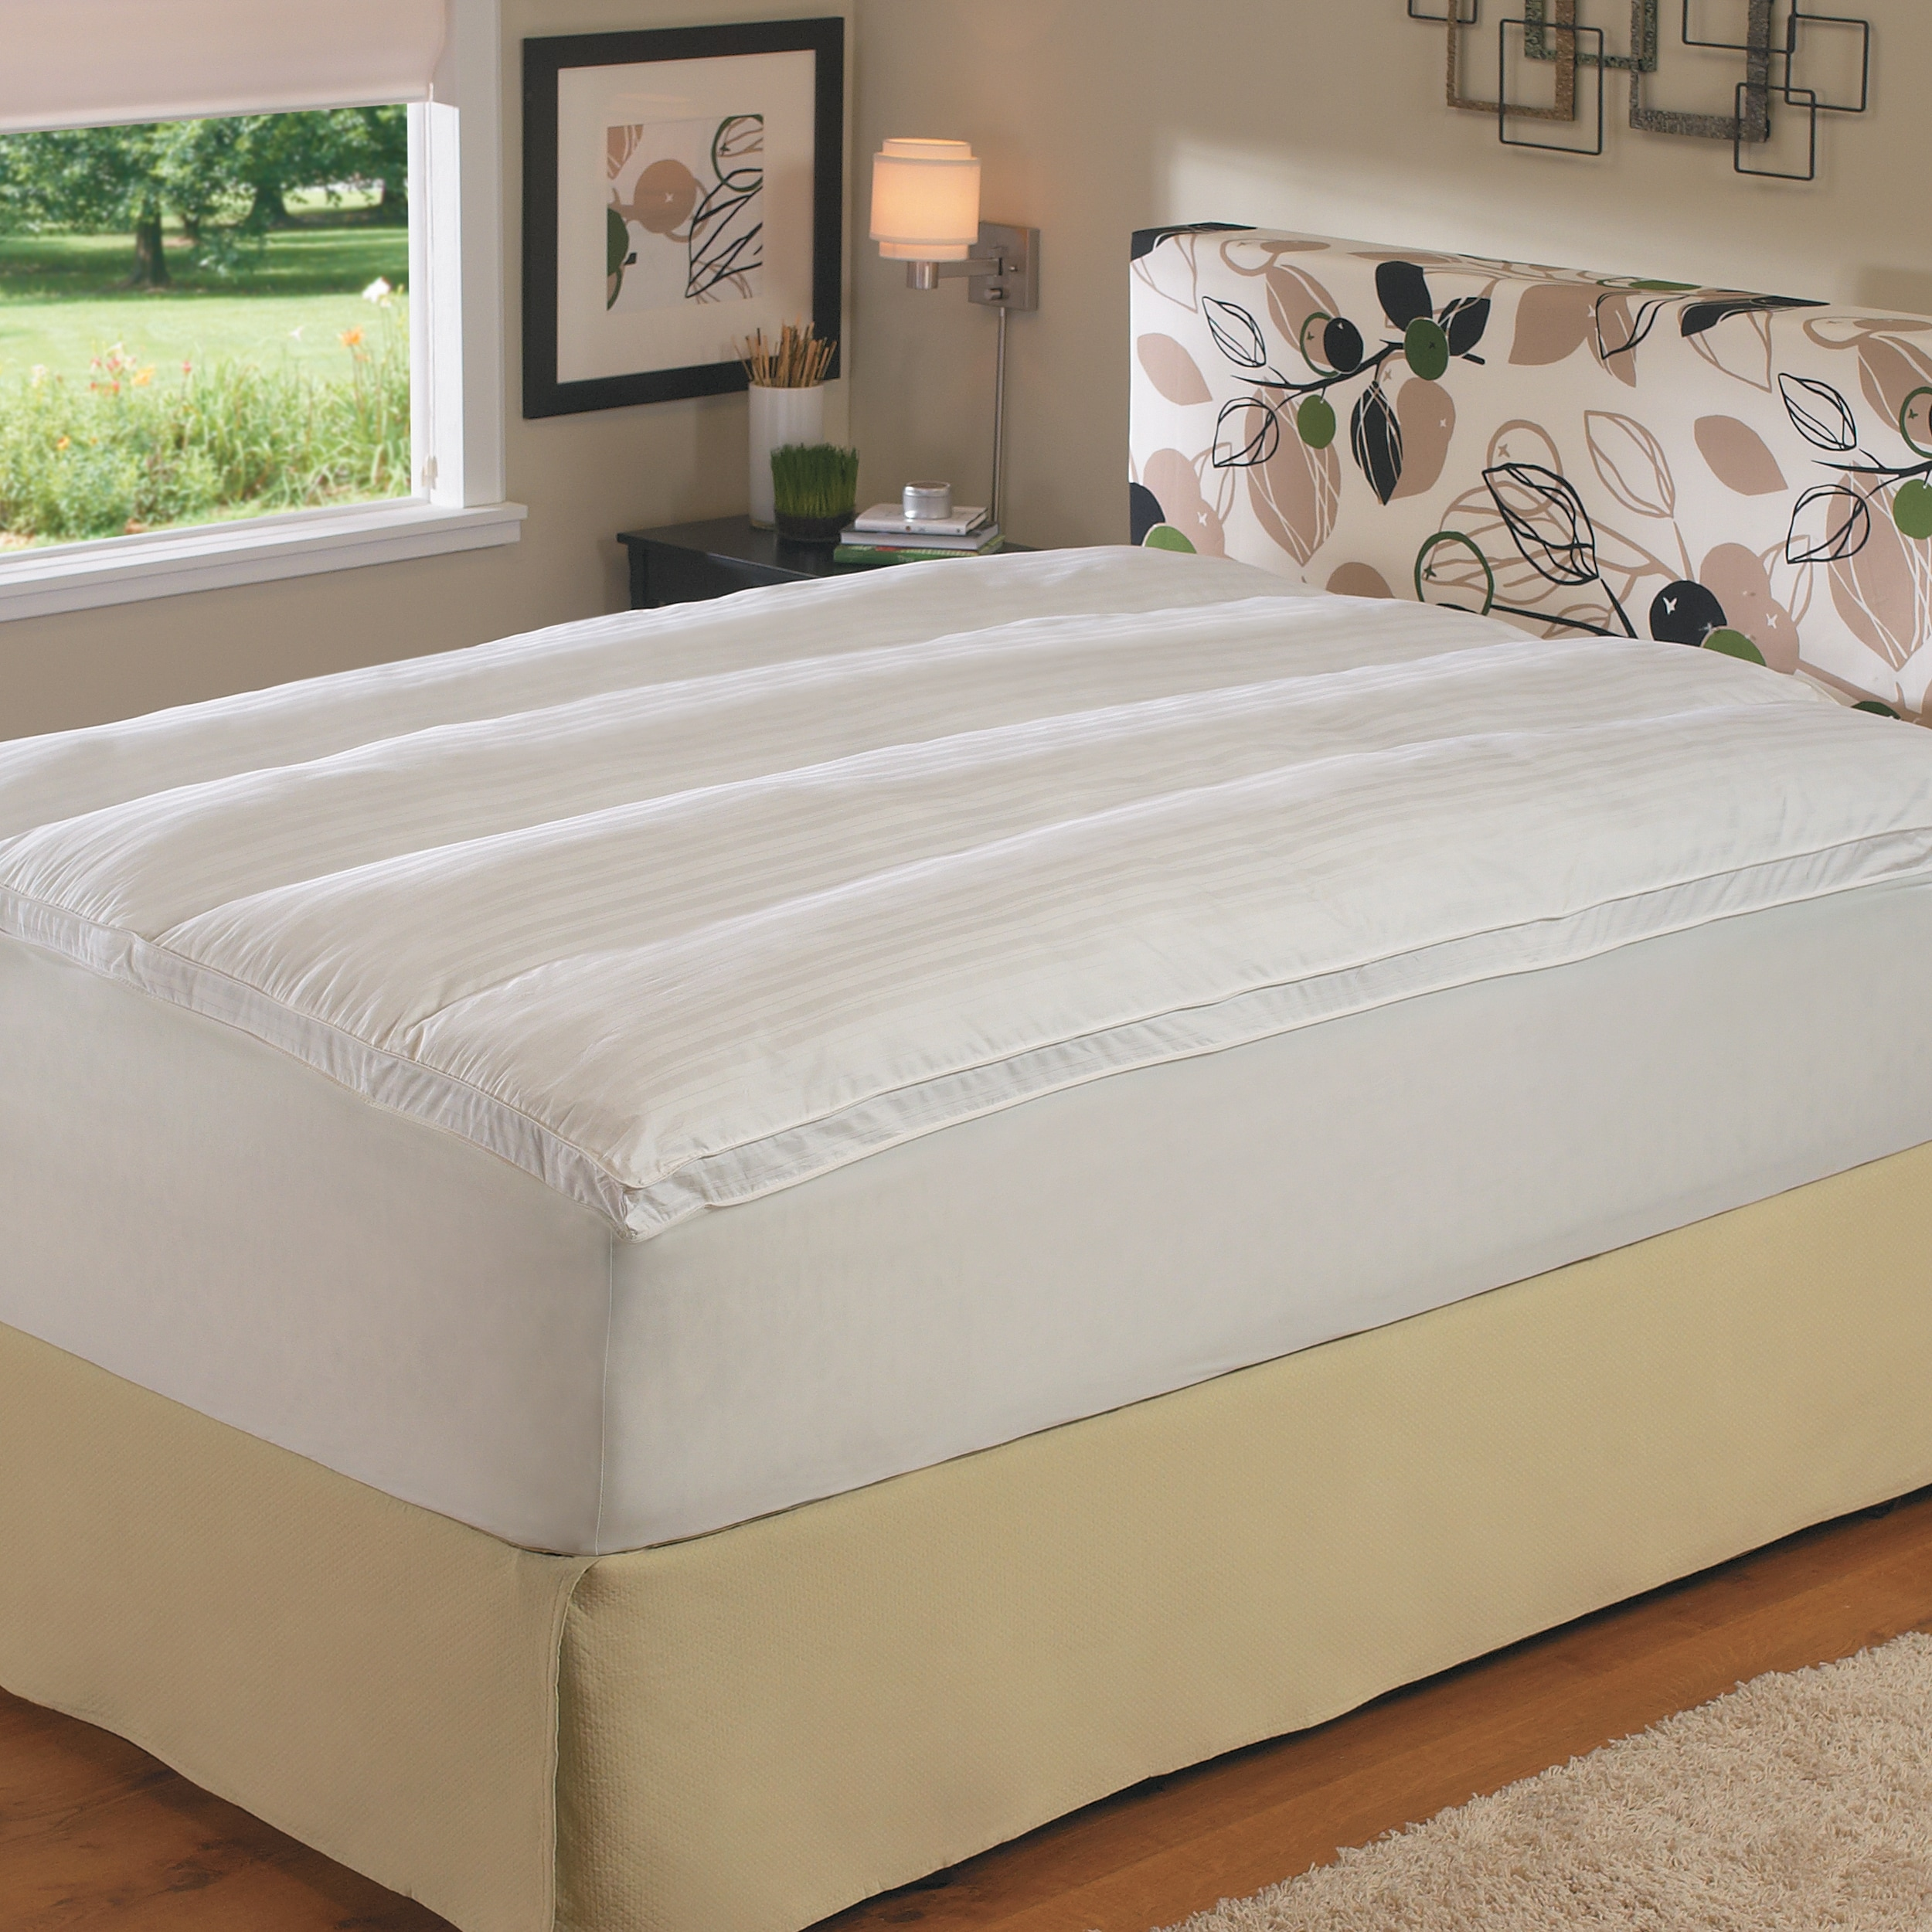 Luxury 360 thread count Extra Comfort Twin/ Full-size Fiberbed with Skirt